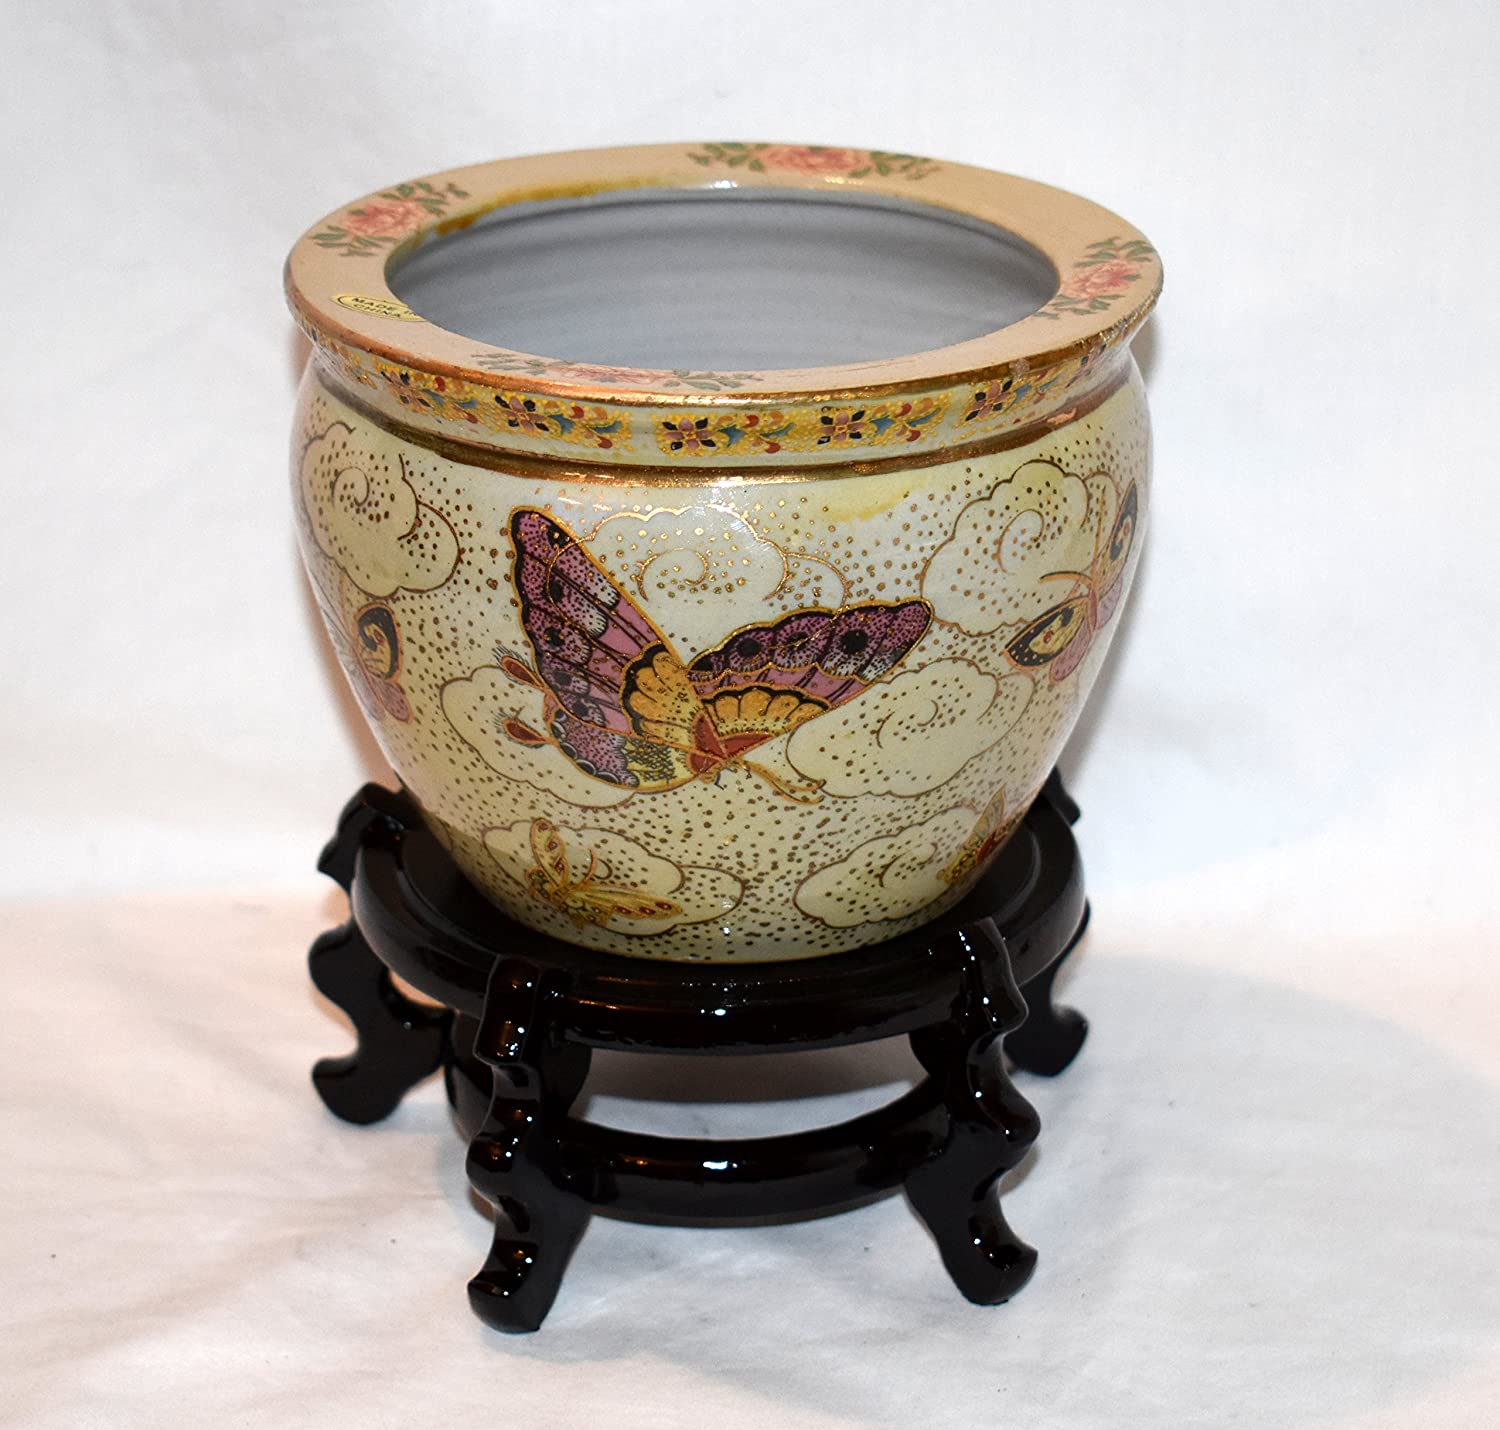 """New 6"""" Oriental Colorful Butterflies Butterfly Fish Bowl Jardiniere Planter Plant Pot Satsuma Style with Wooden Stand"""